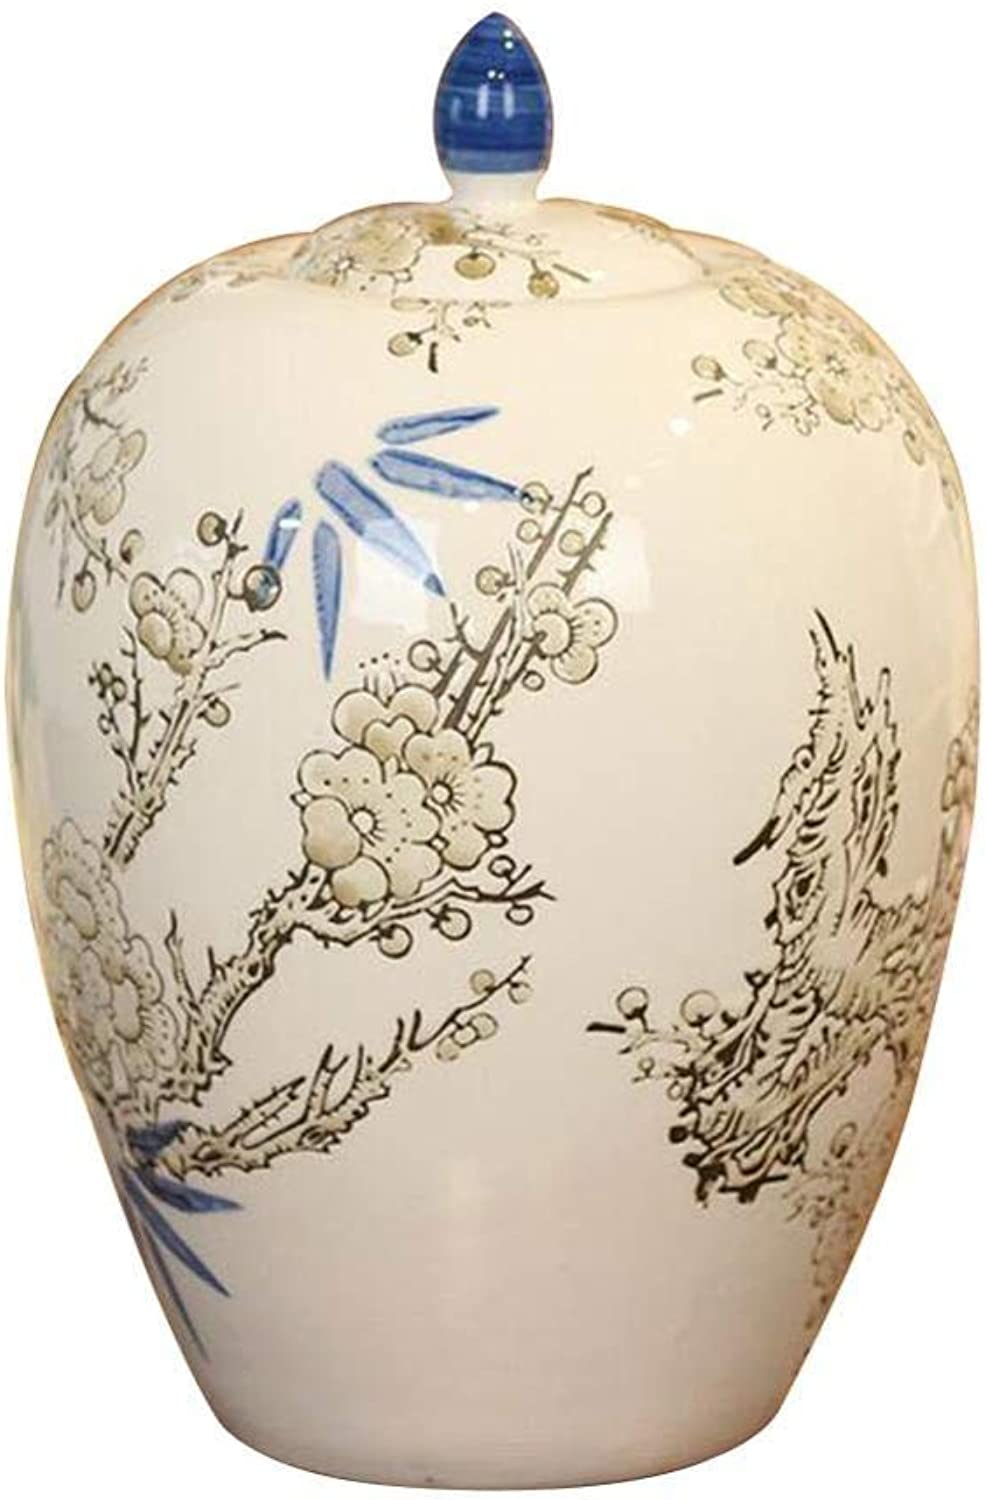 Adult Funeral Urn  Ceramics Seal Cover Moisture Proof Handcrafted Cremation Urns  For A Small Amount Human Or Pets Ashes  Display Burial Urn At Home Or In Niche At Columbarium,Urns